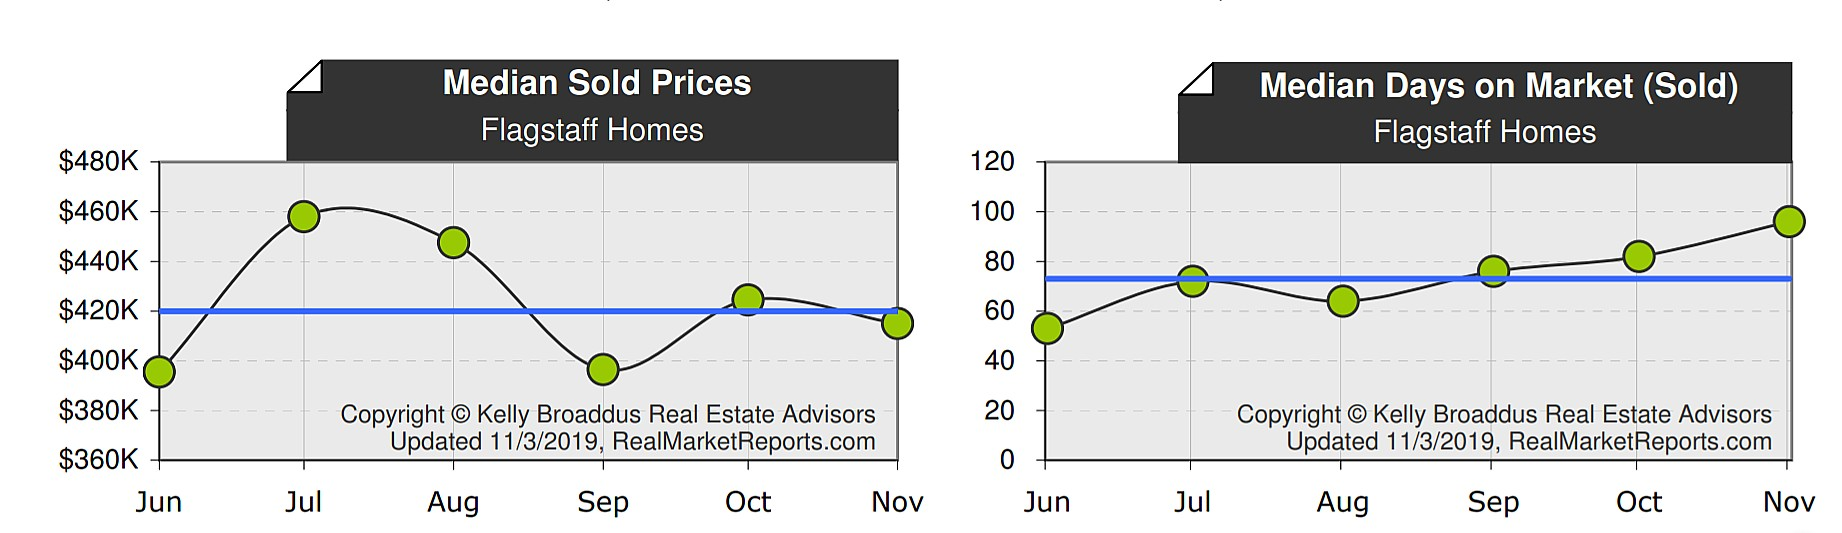 October 2019 Flagstaff Home Price and Days on Market